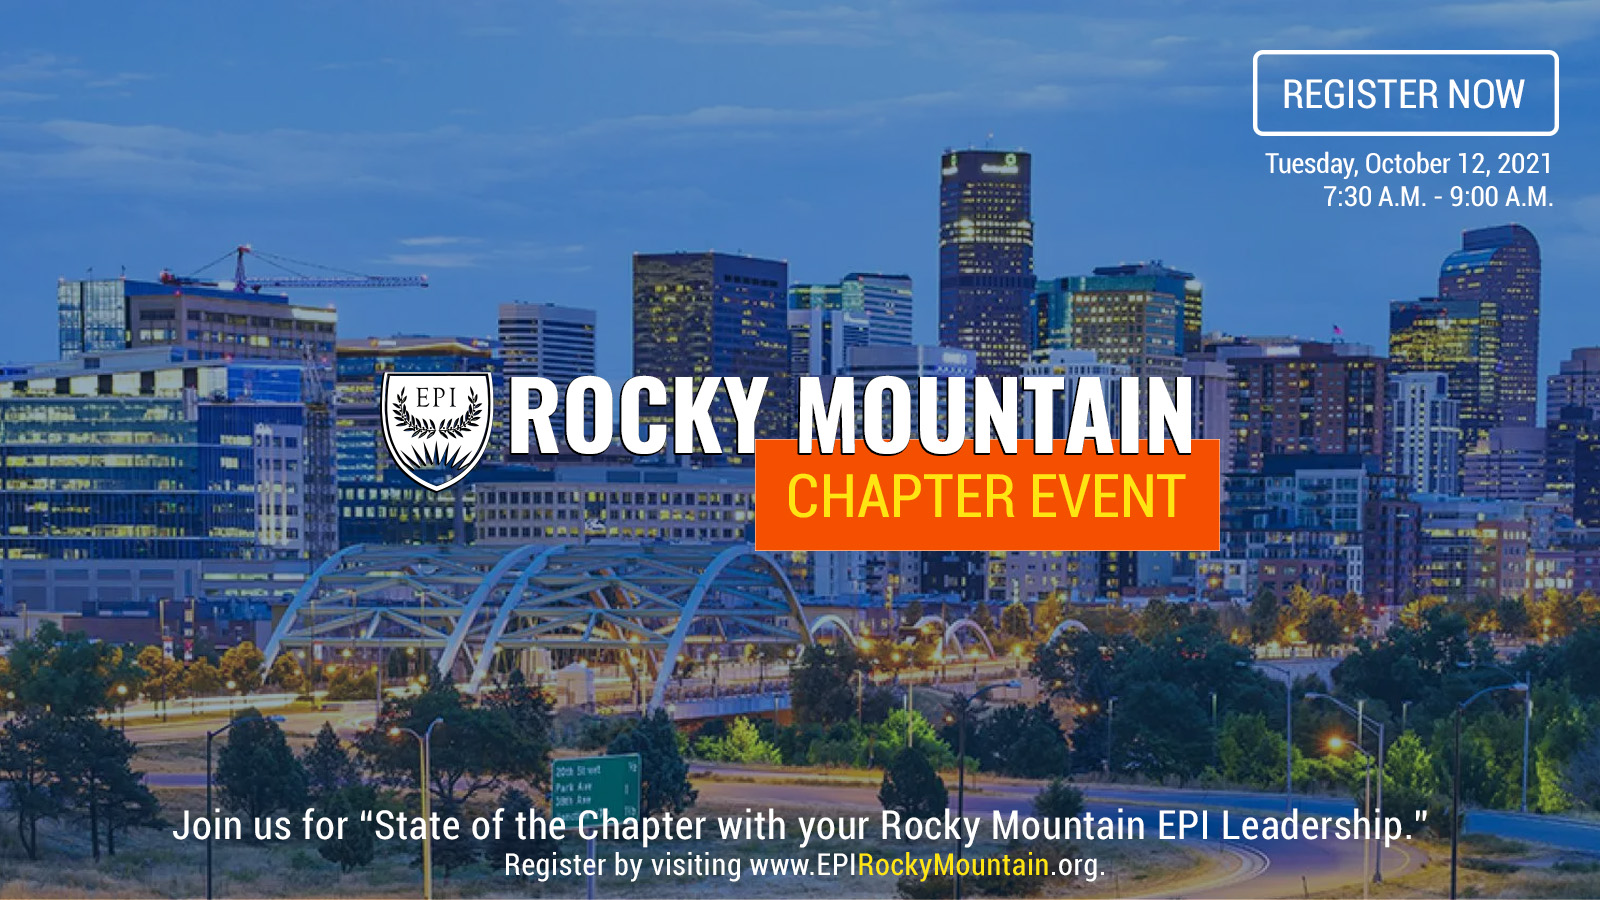 State of the Chapter with your Rocky Mountain EPI Leadership